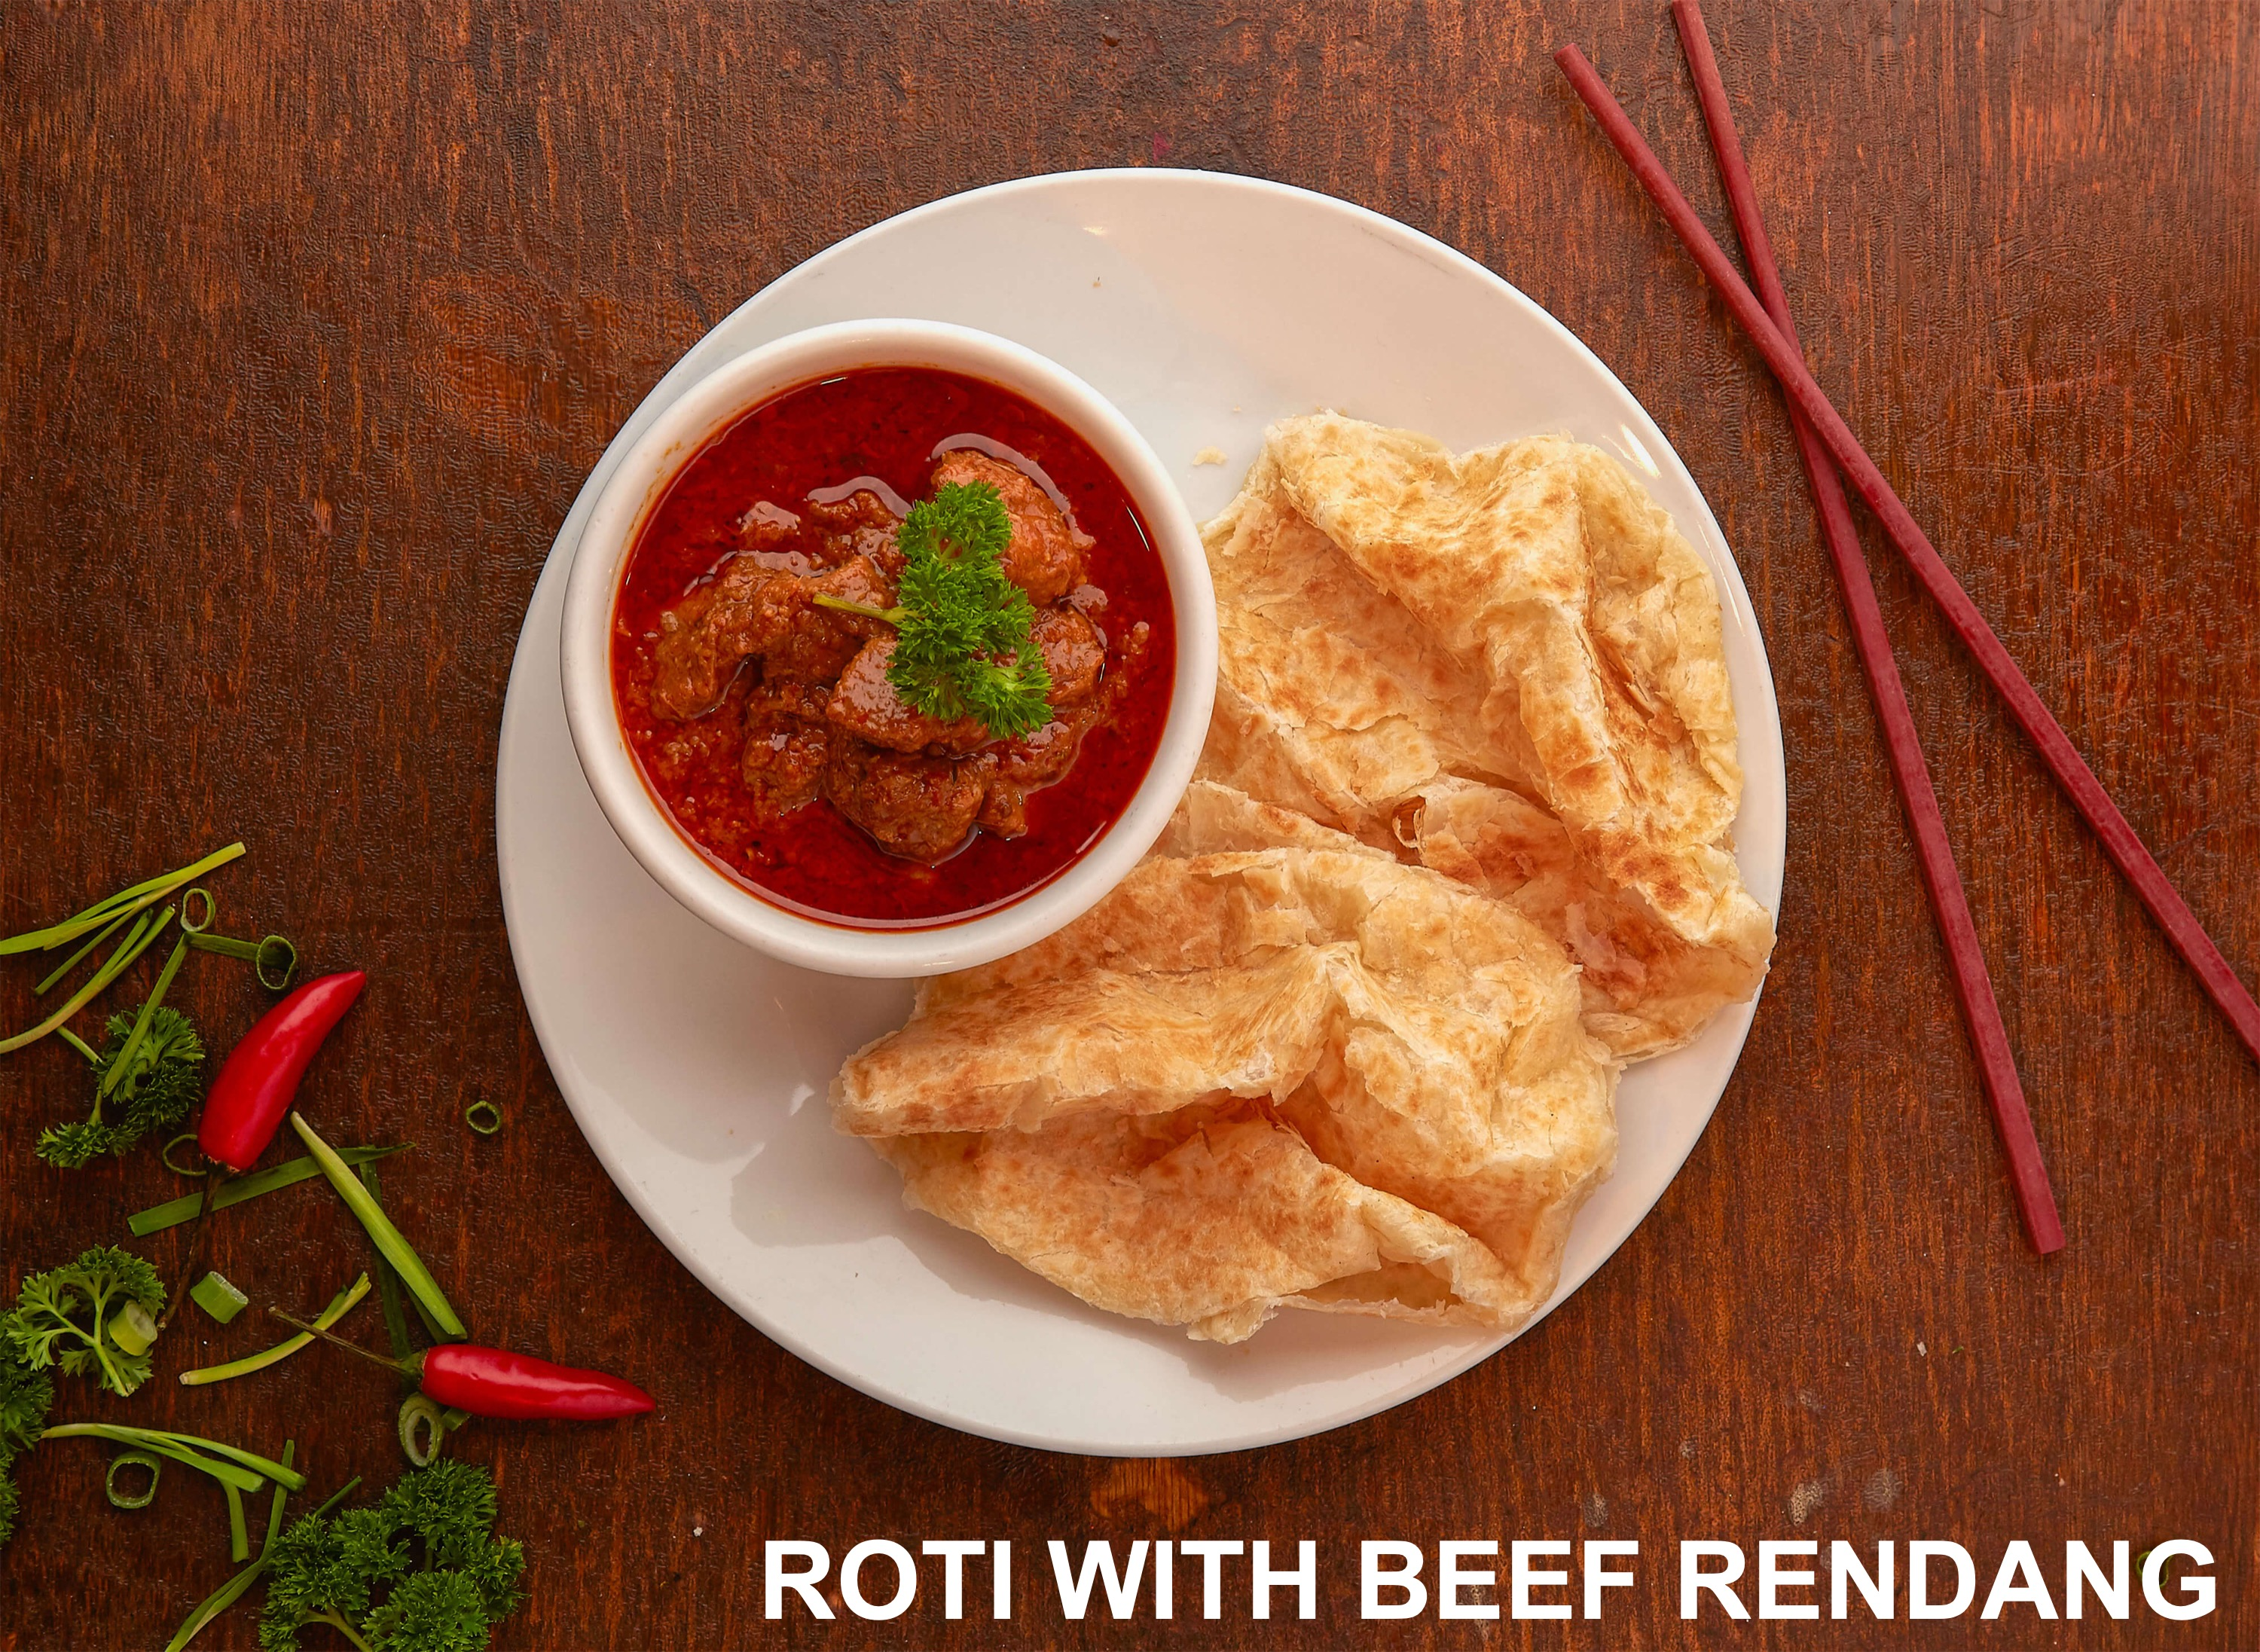 RotiWithBeefRendang_ChintaKechil31685_ed